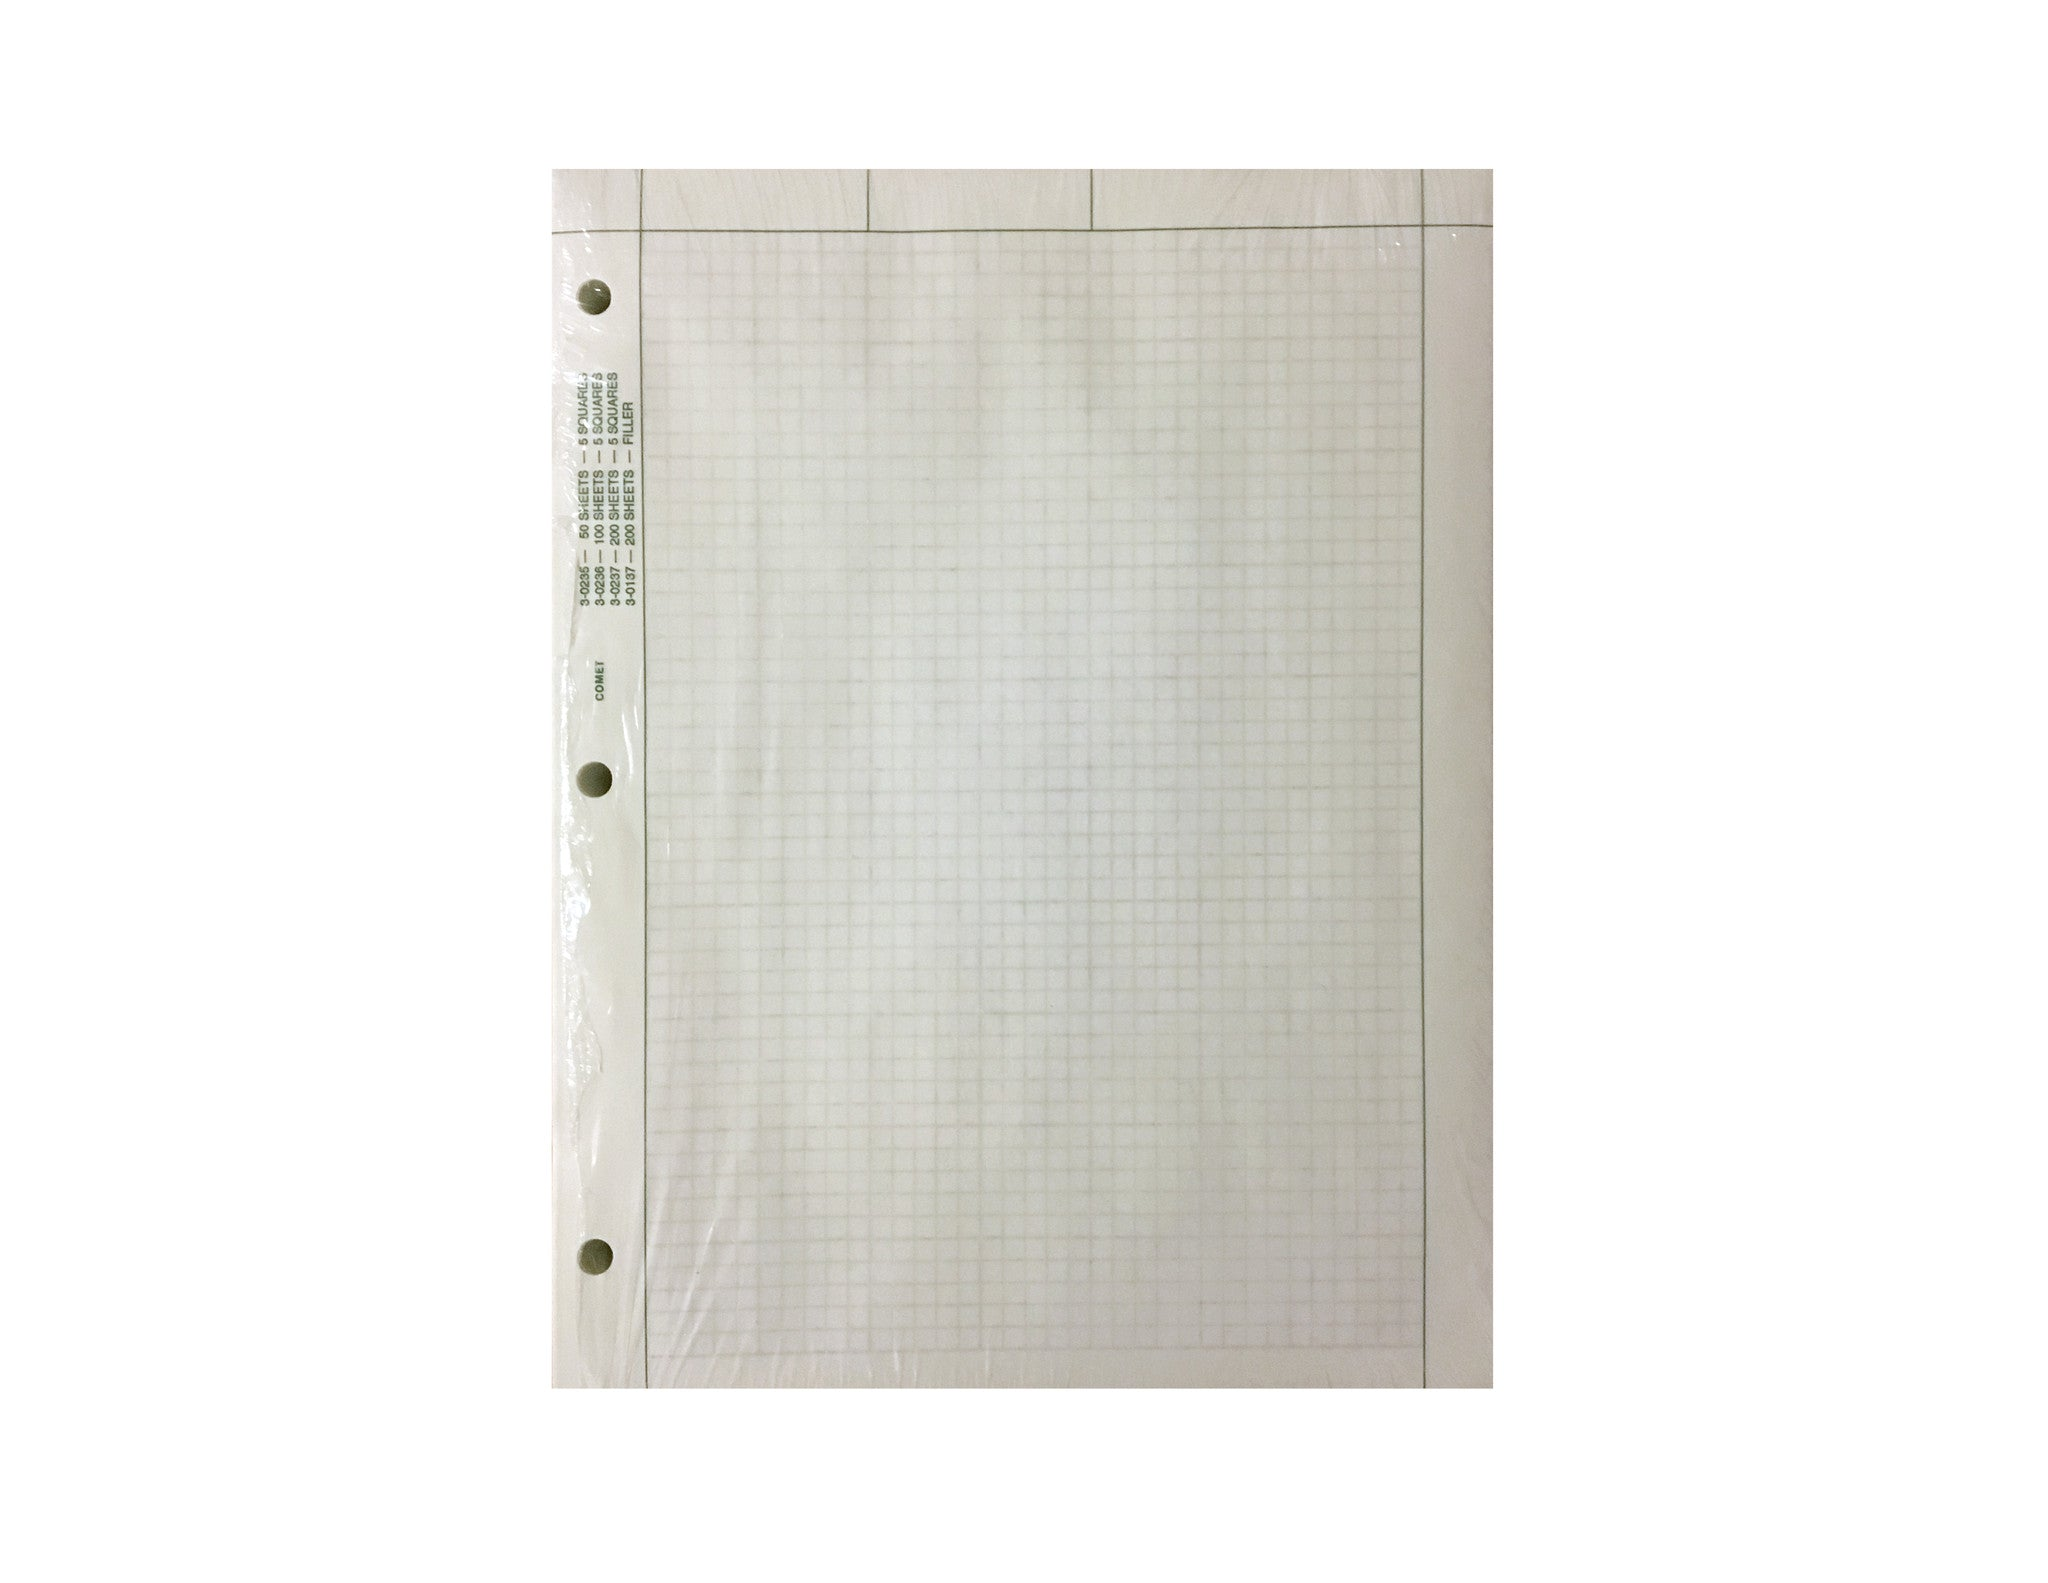 "Engineering Paper, 500 sheets, 8.5"" x 11"" (Loose Leaf) 5 squares/inch, Green Tint"